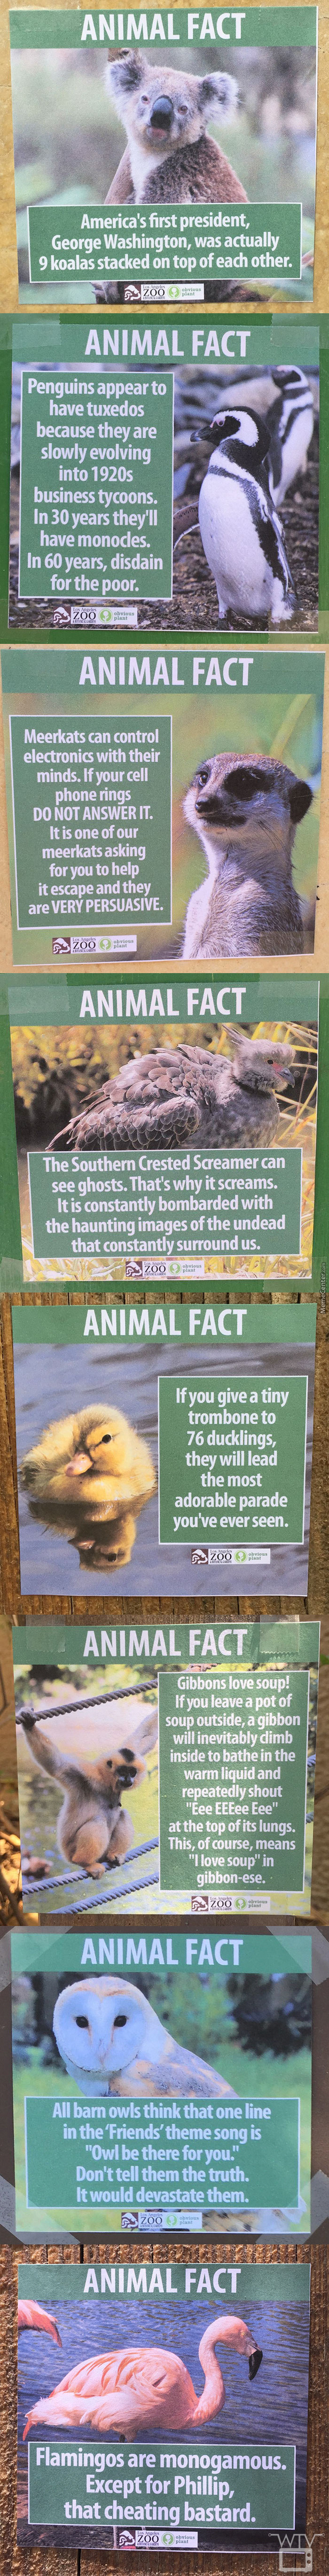 Fake Animal Facts Found At The Los Angeles Zoo On Thursday